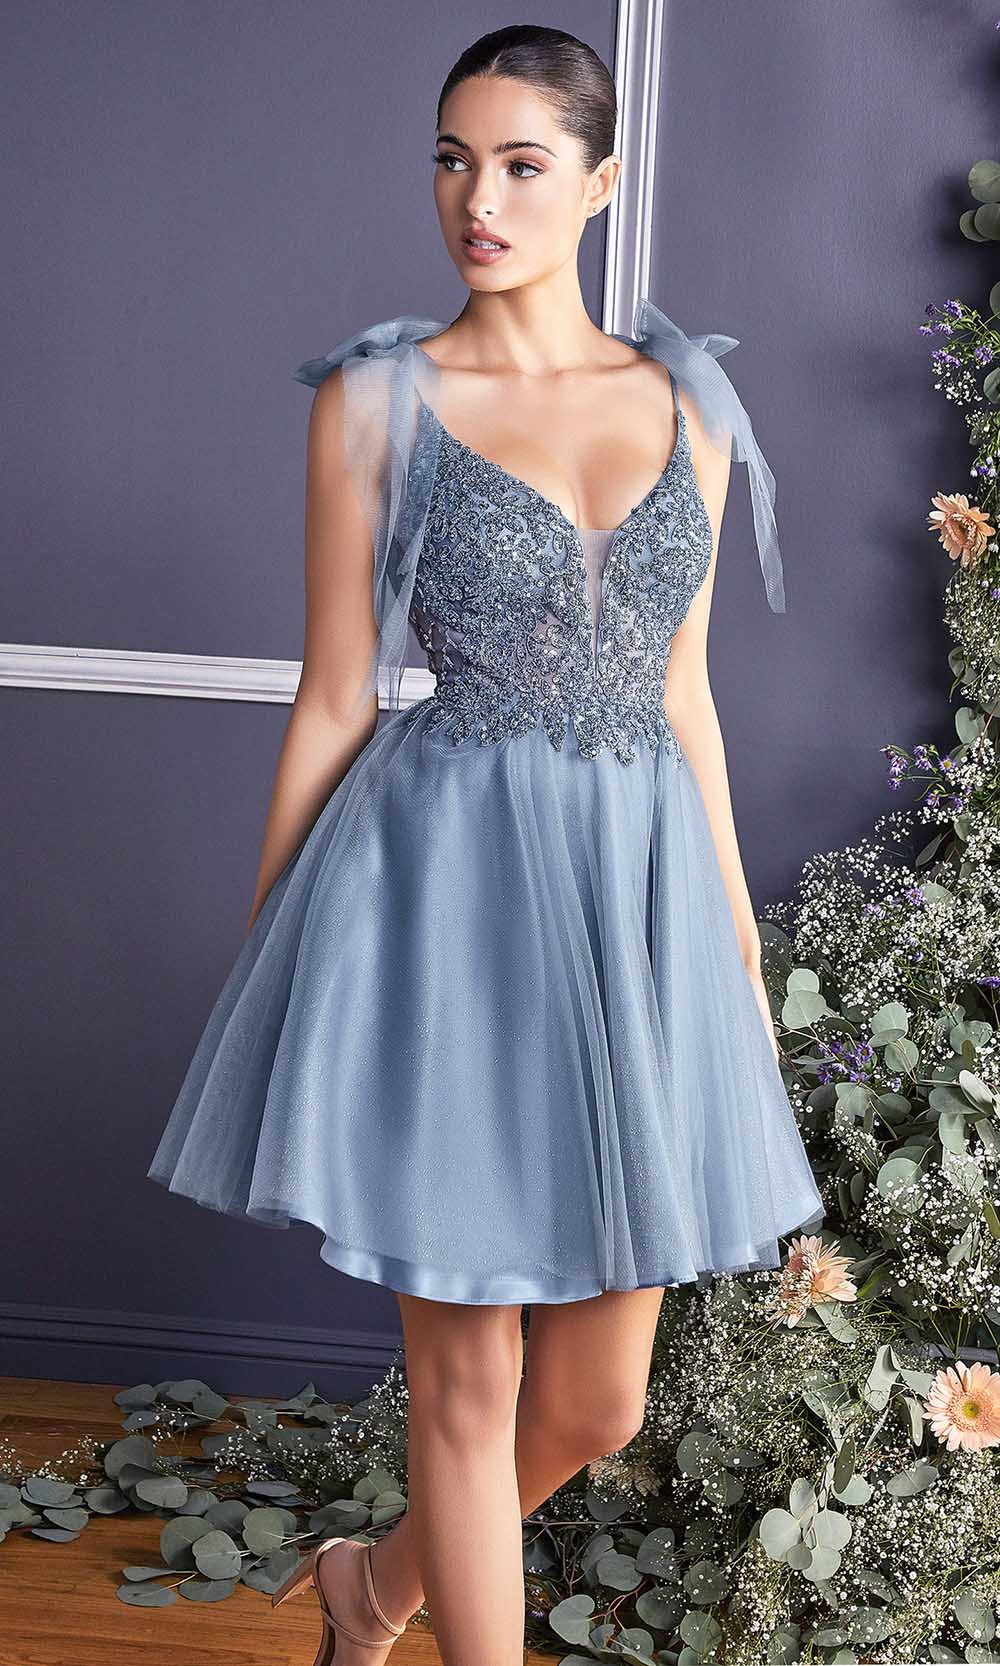 Cinderella Divine - CD0174 Bow Accented Beaded A-Line Dress In Blue